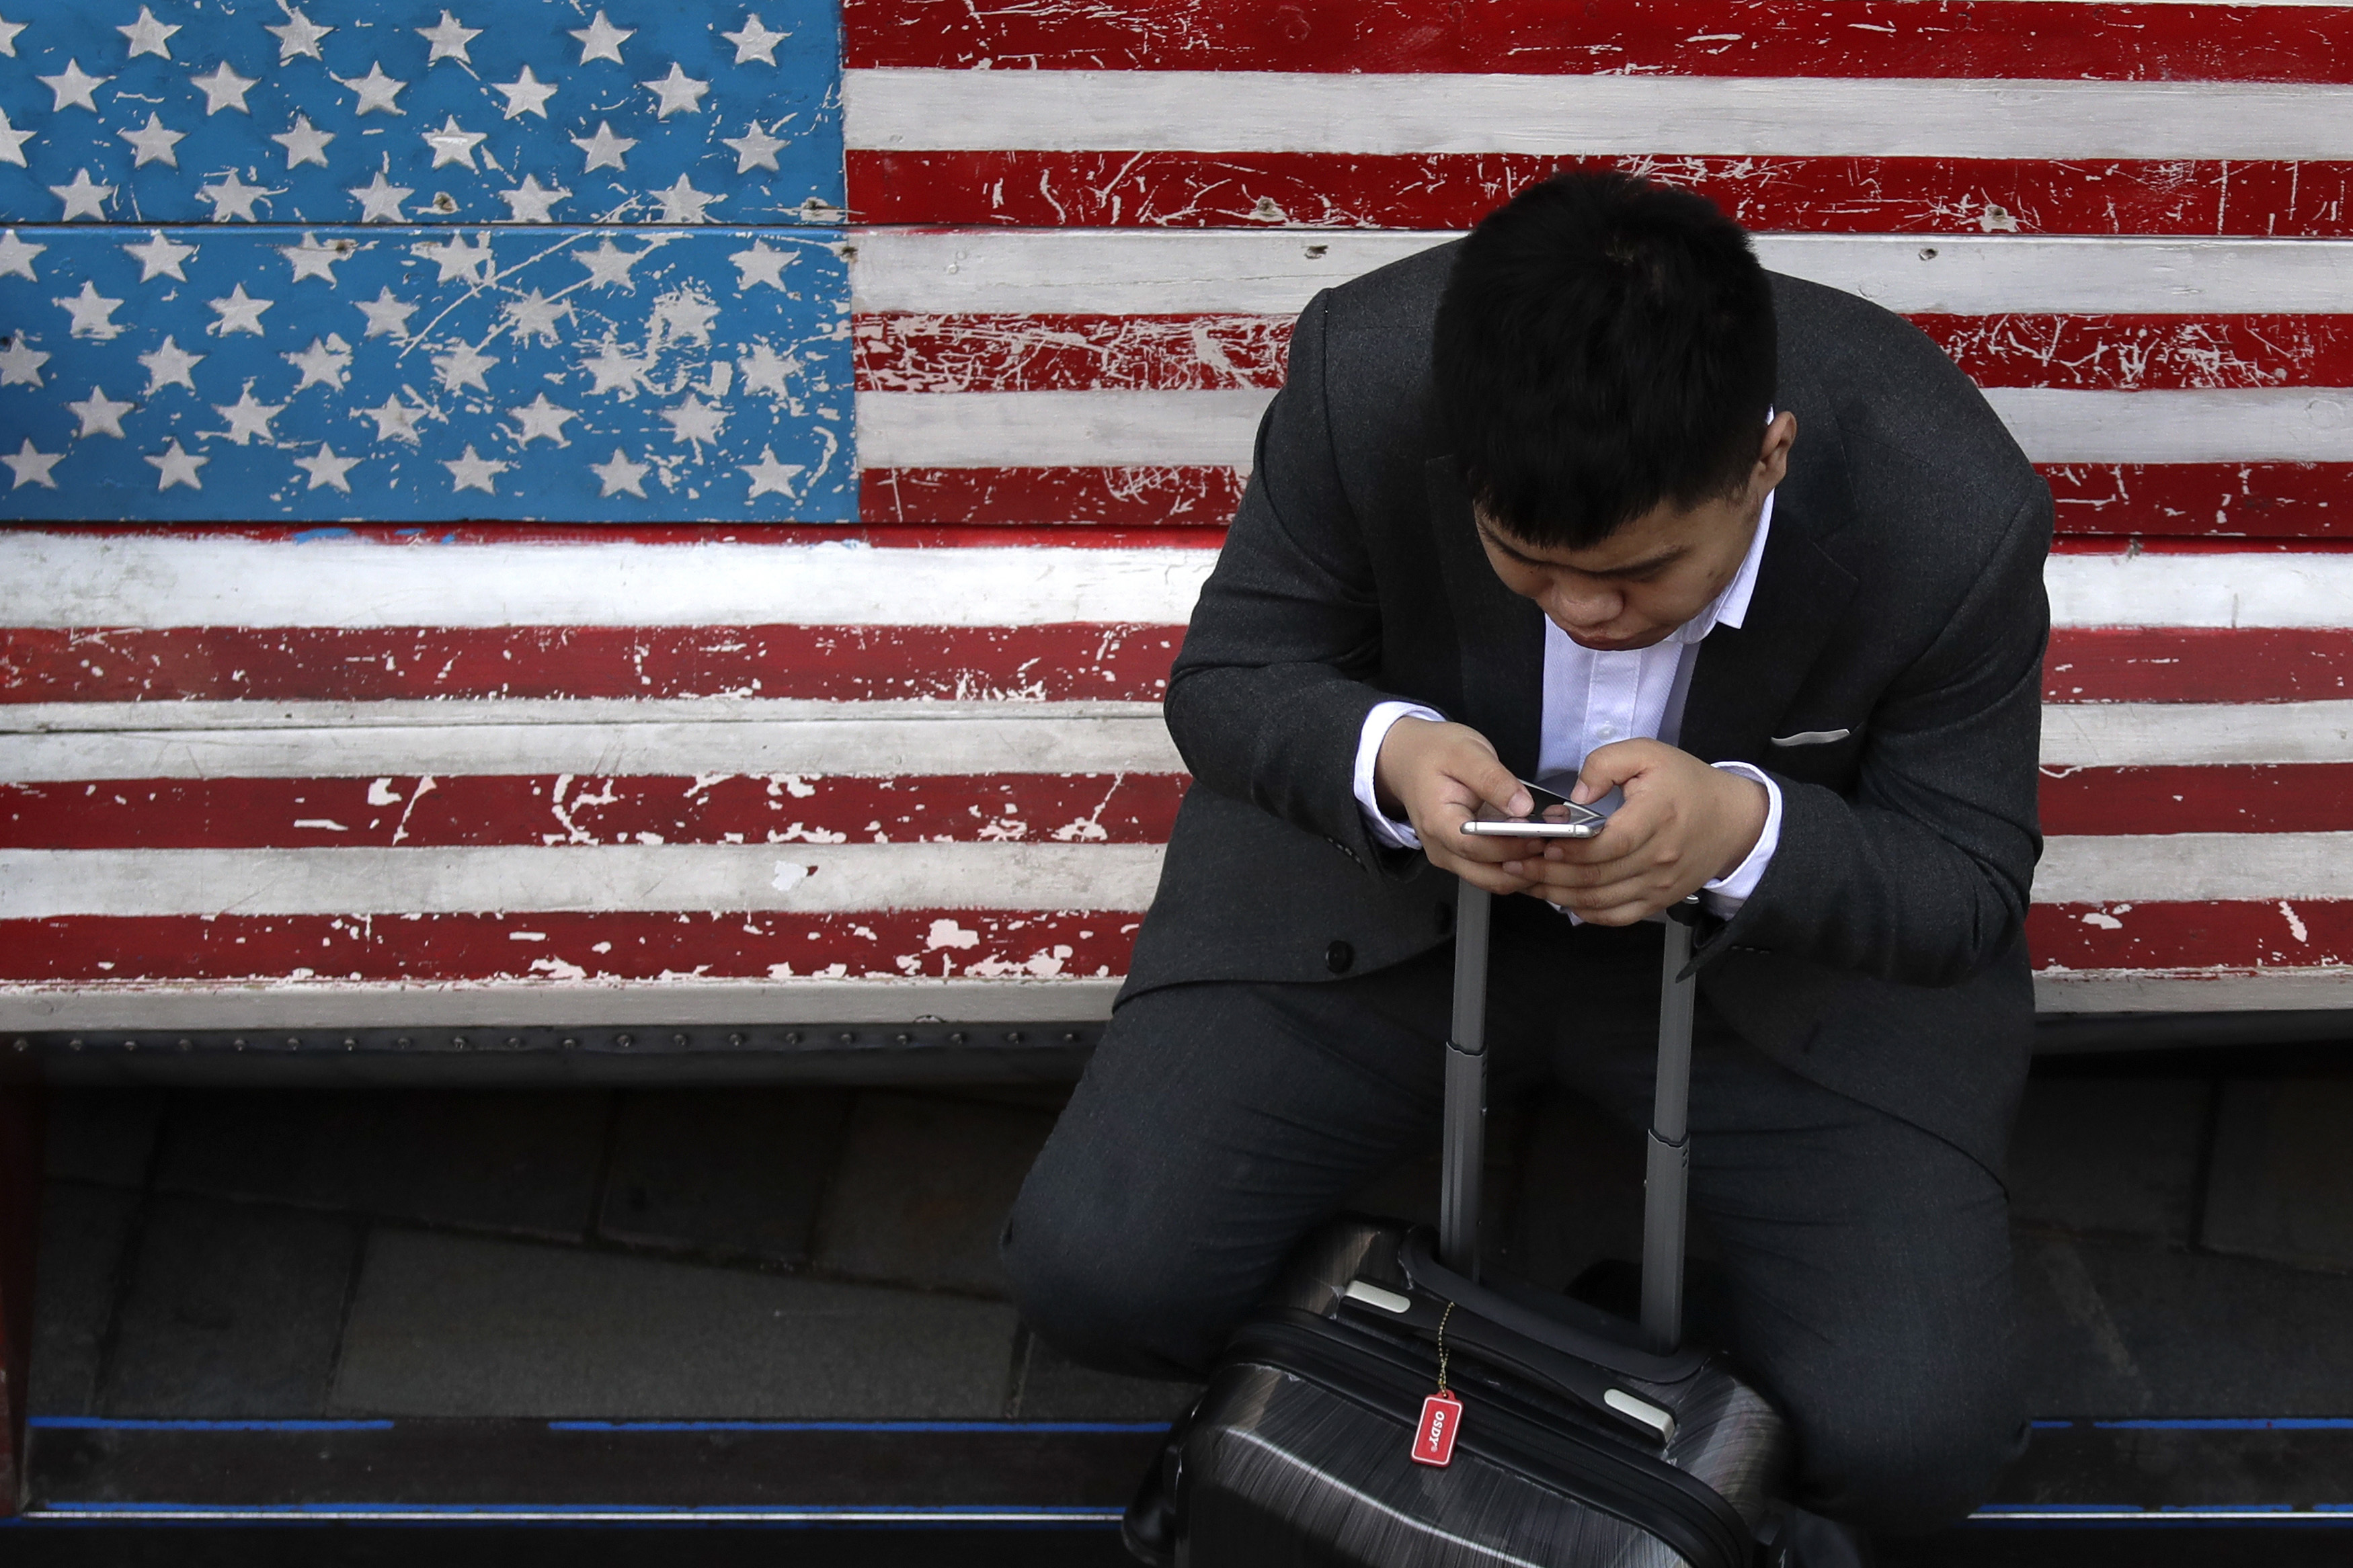 A man on a bench with an American flag checks his smartphone in Beijing.